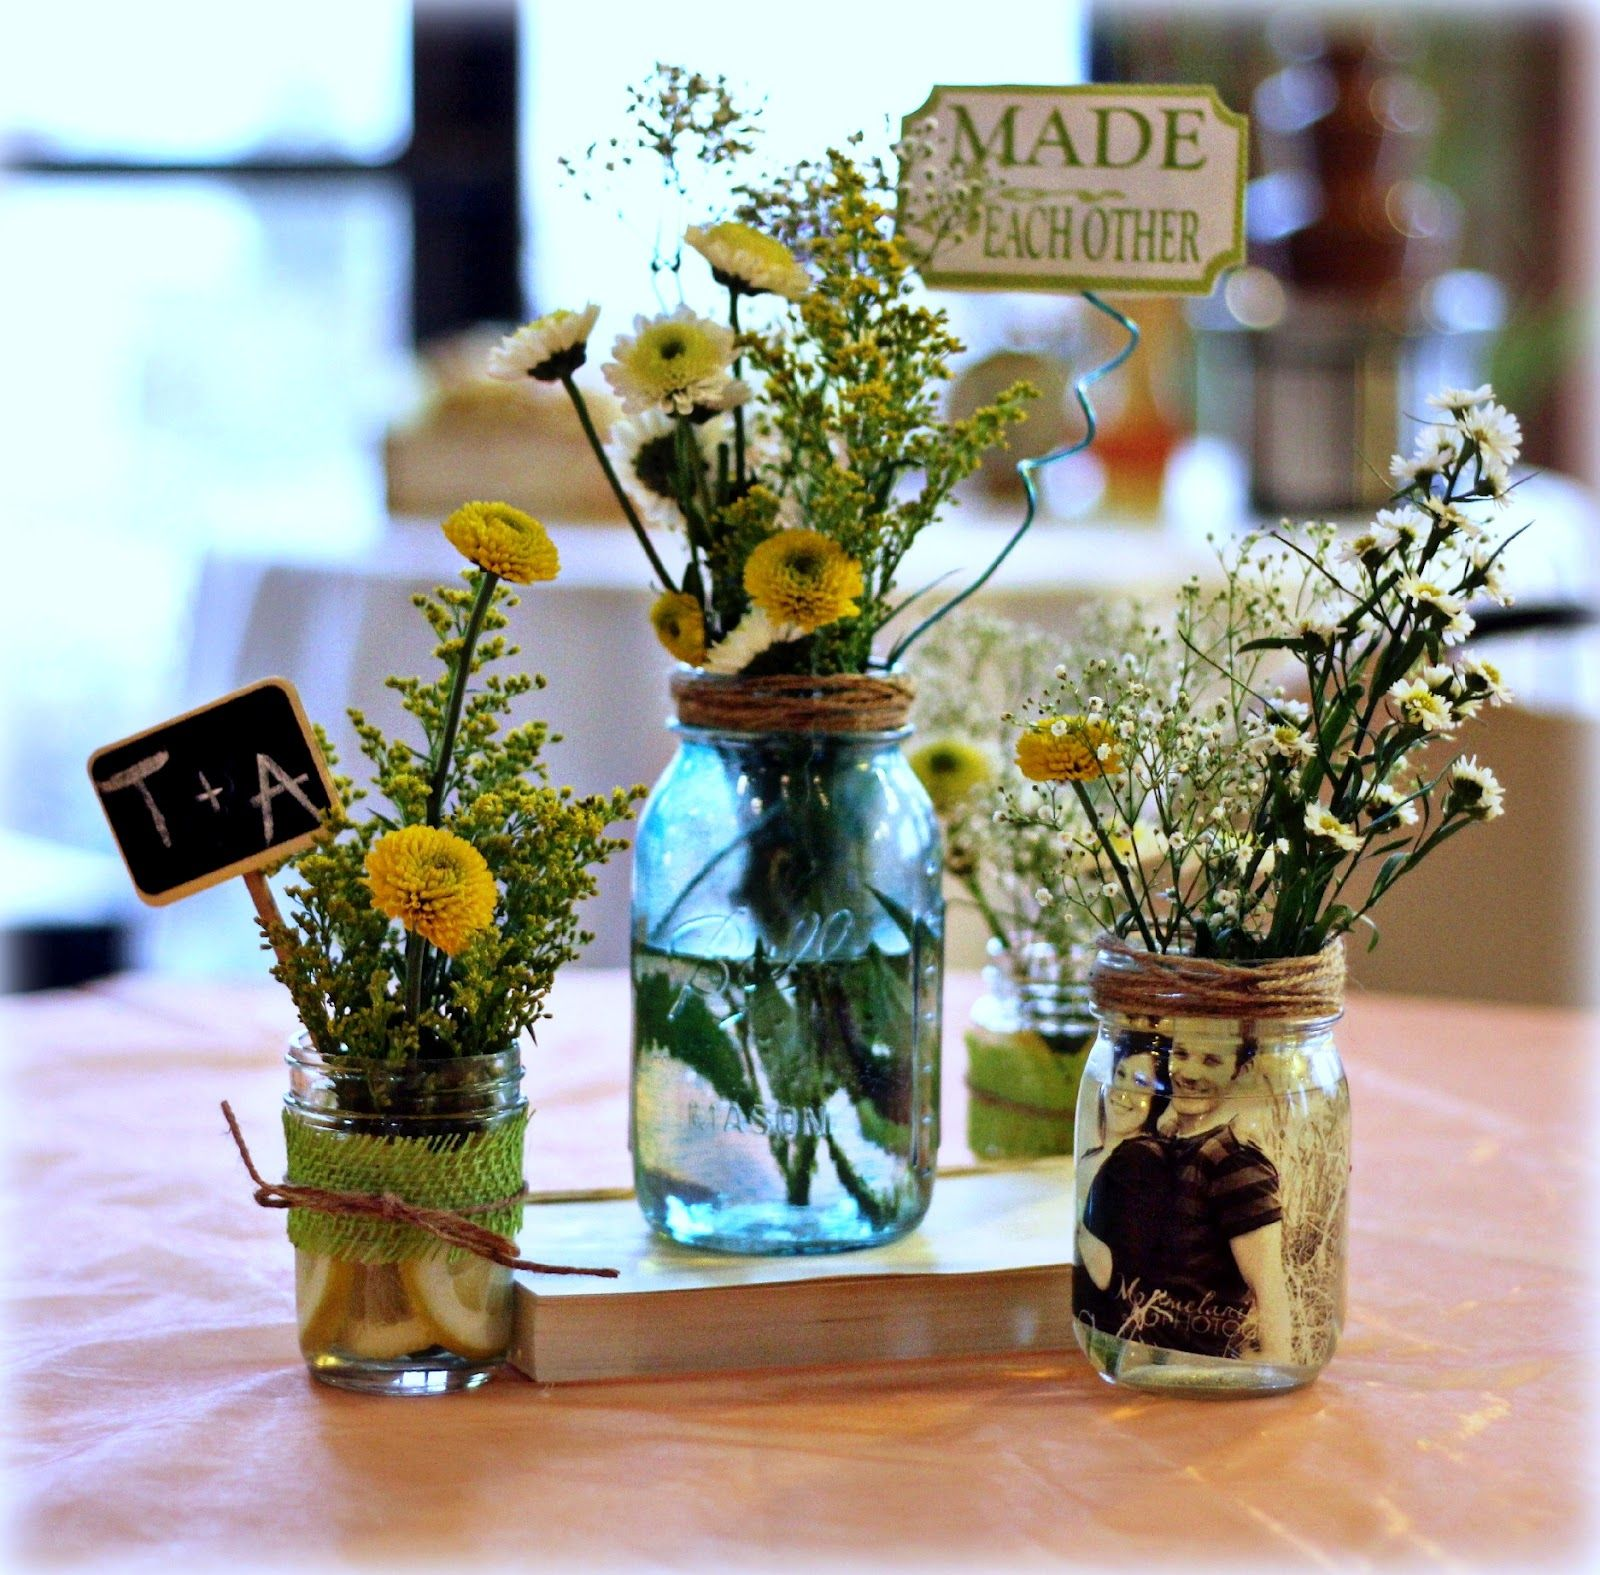 pictures of wedding centerpieces using mason jars%0A in case the mason jars with lights in them are used elsewhere in the decor